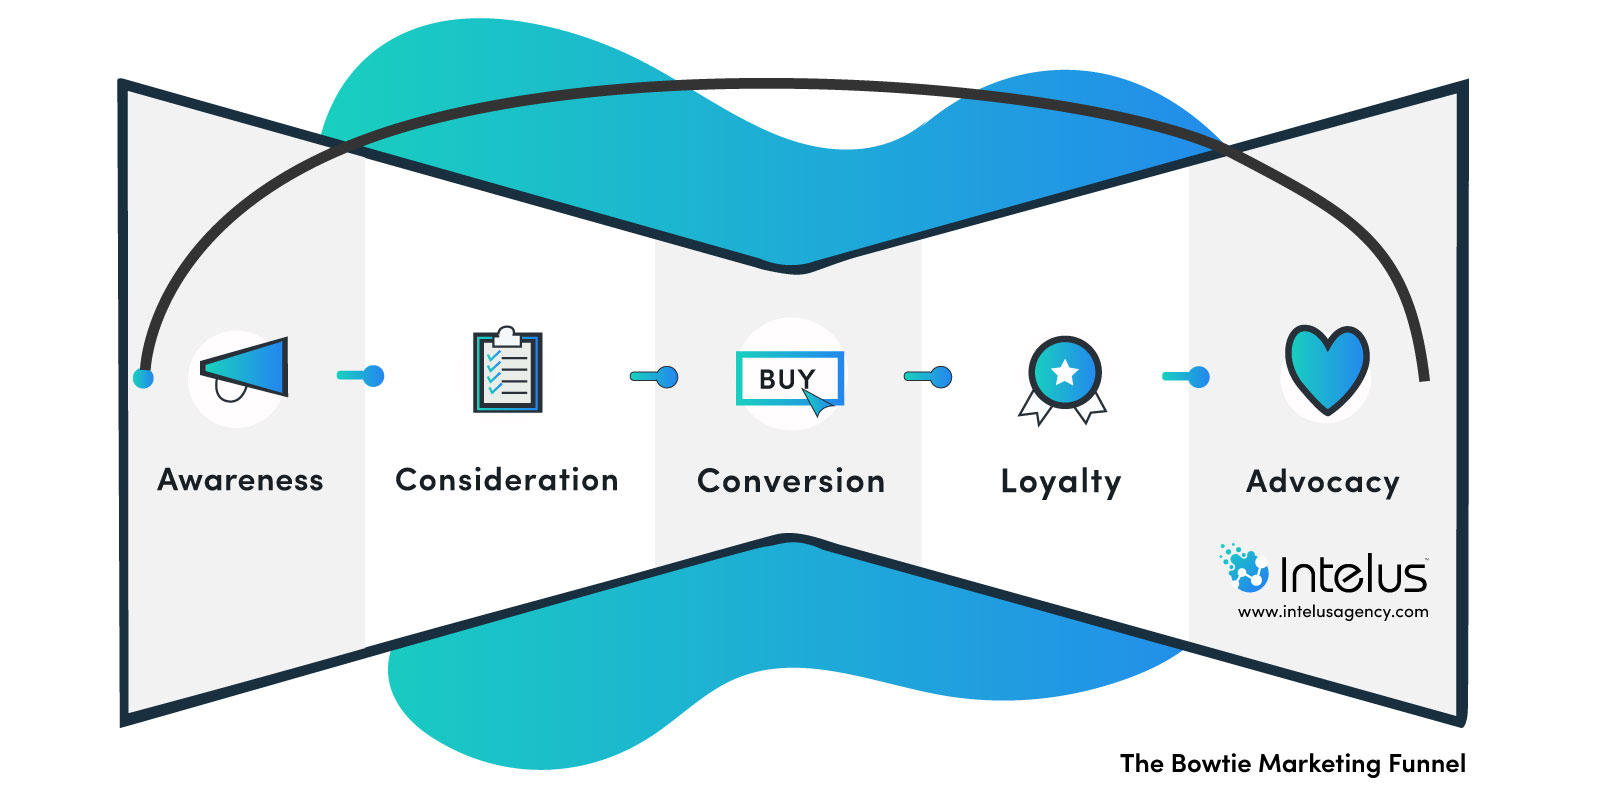 The Bowtie Marketing Funnel